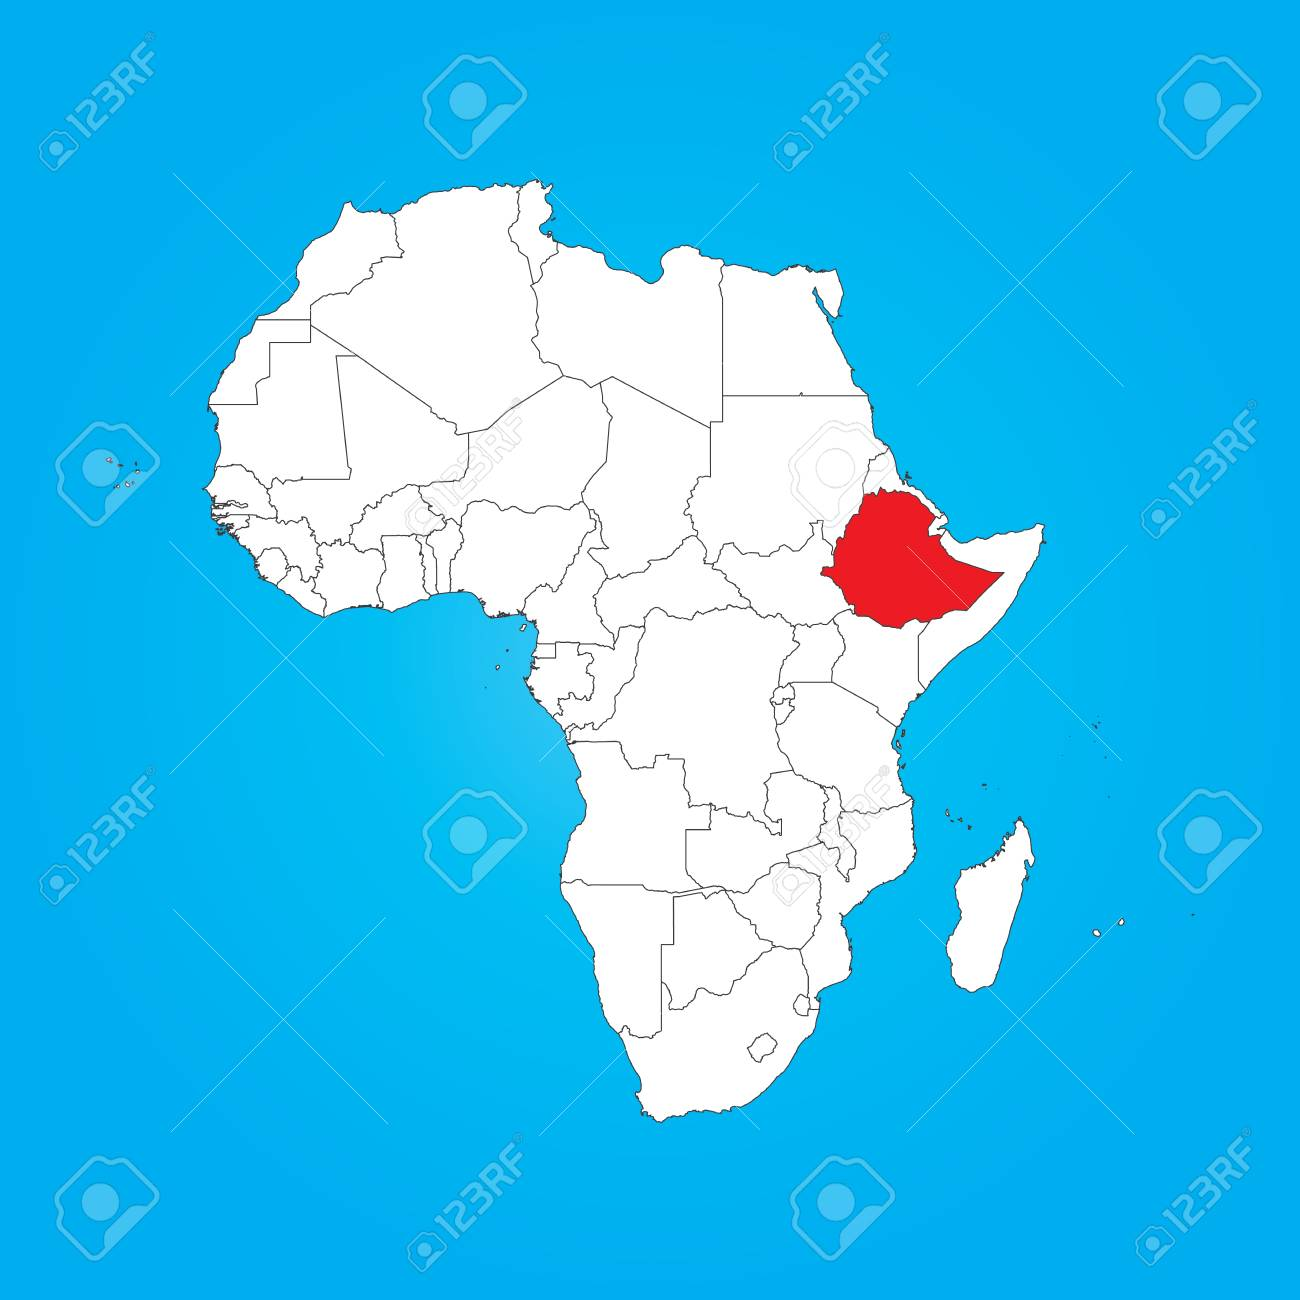 Africa Ethiopia Map.A Map Of Africa With A Selected Country Of Ethiopia